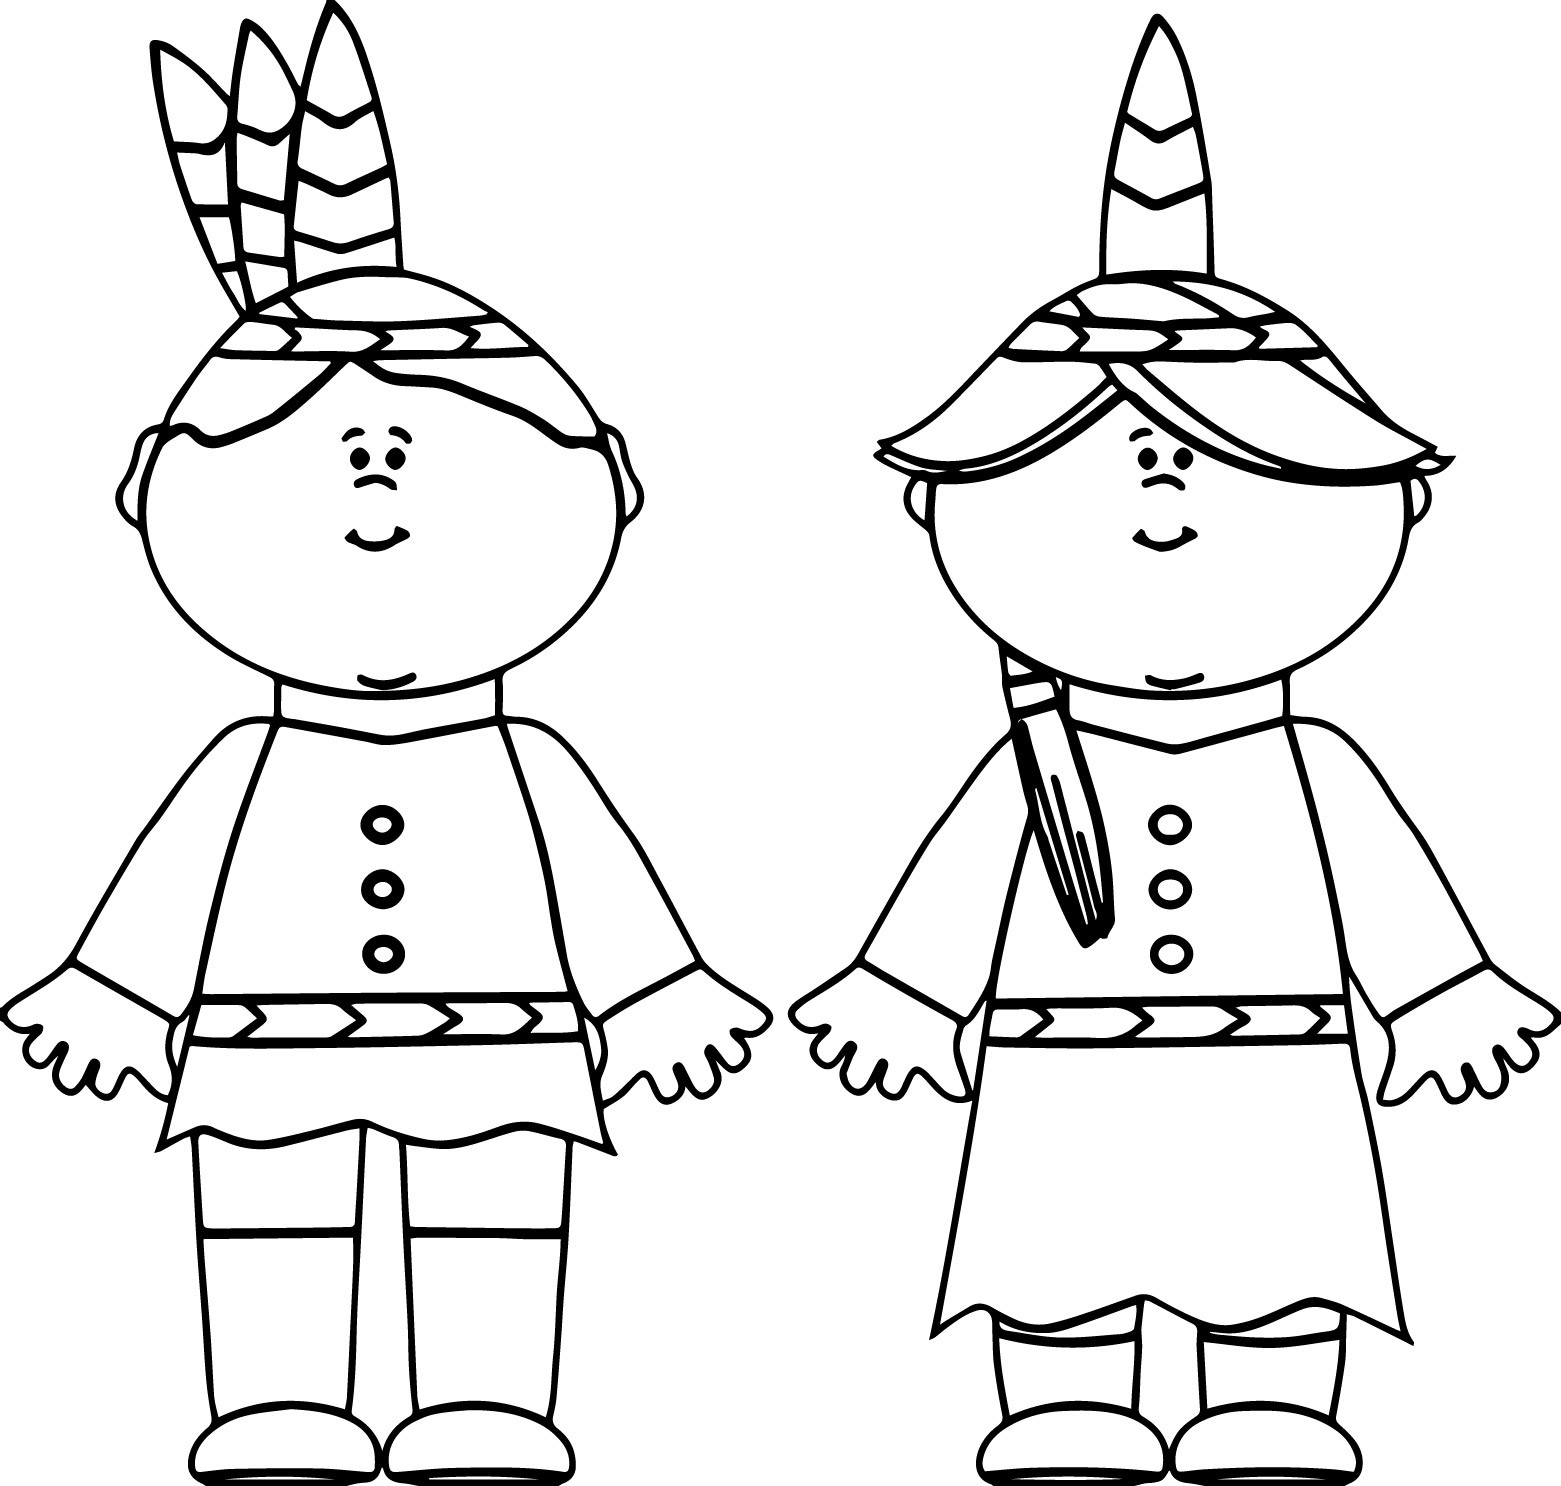 Native American Girl Coloring Page At Getcolorings